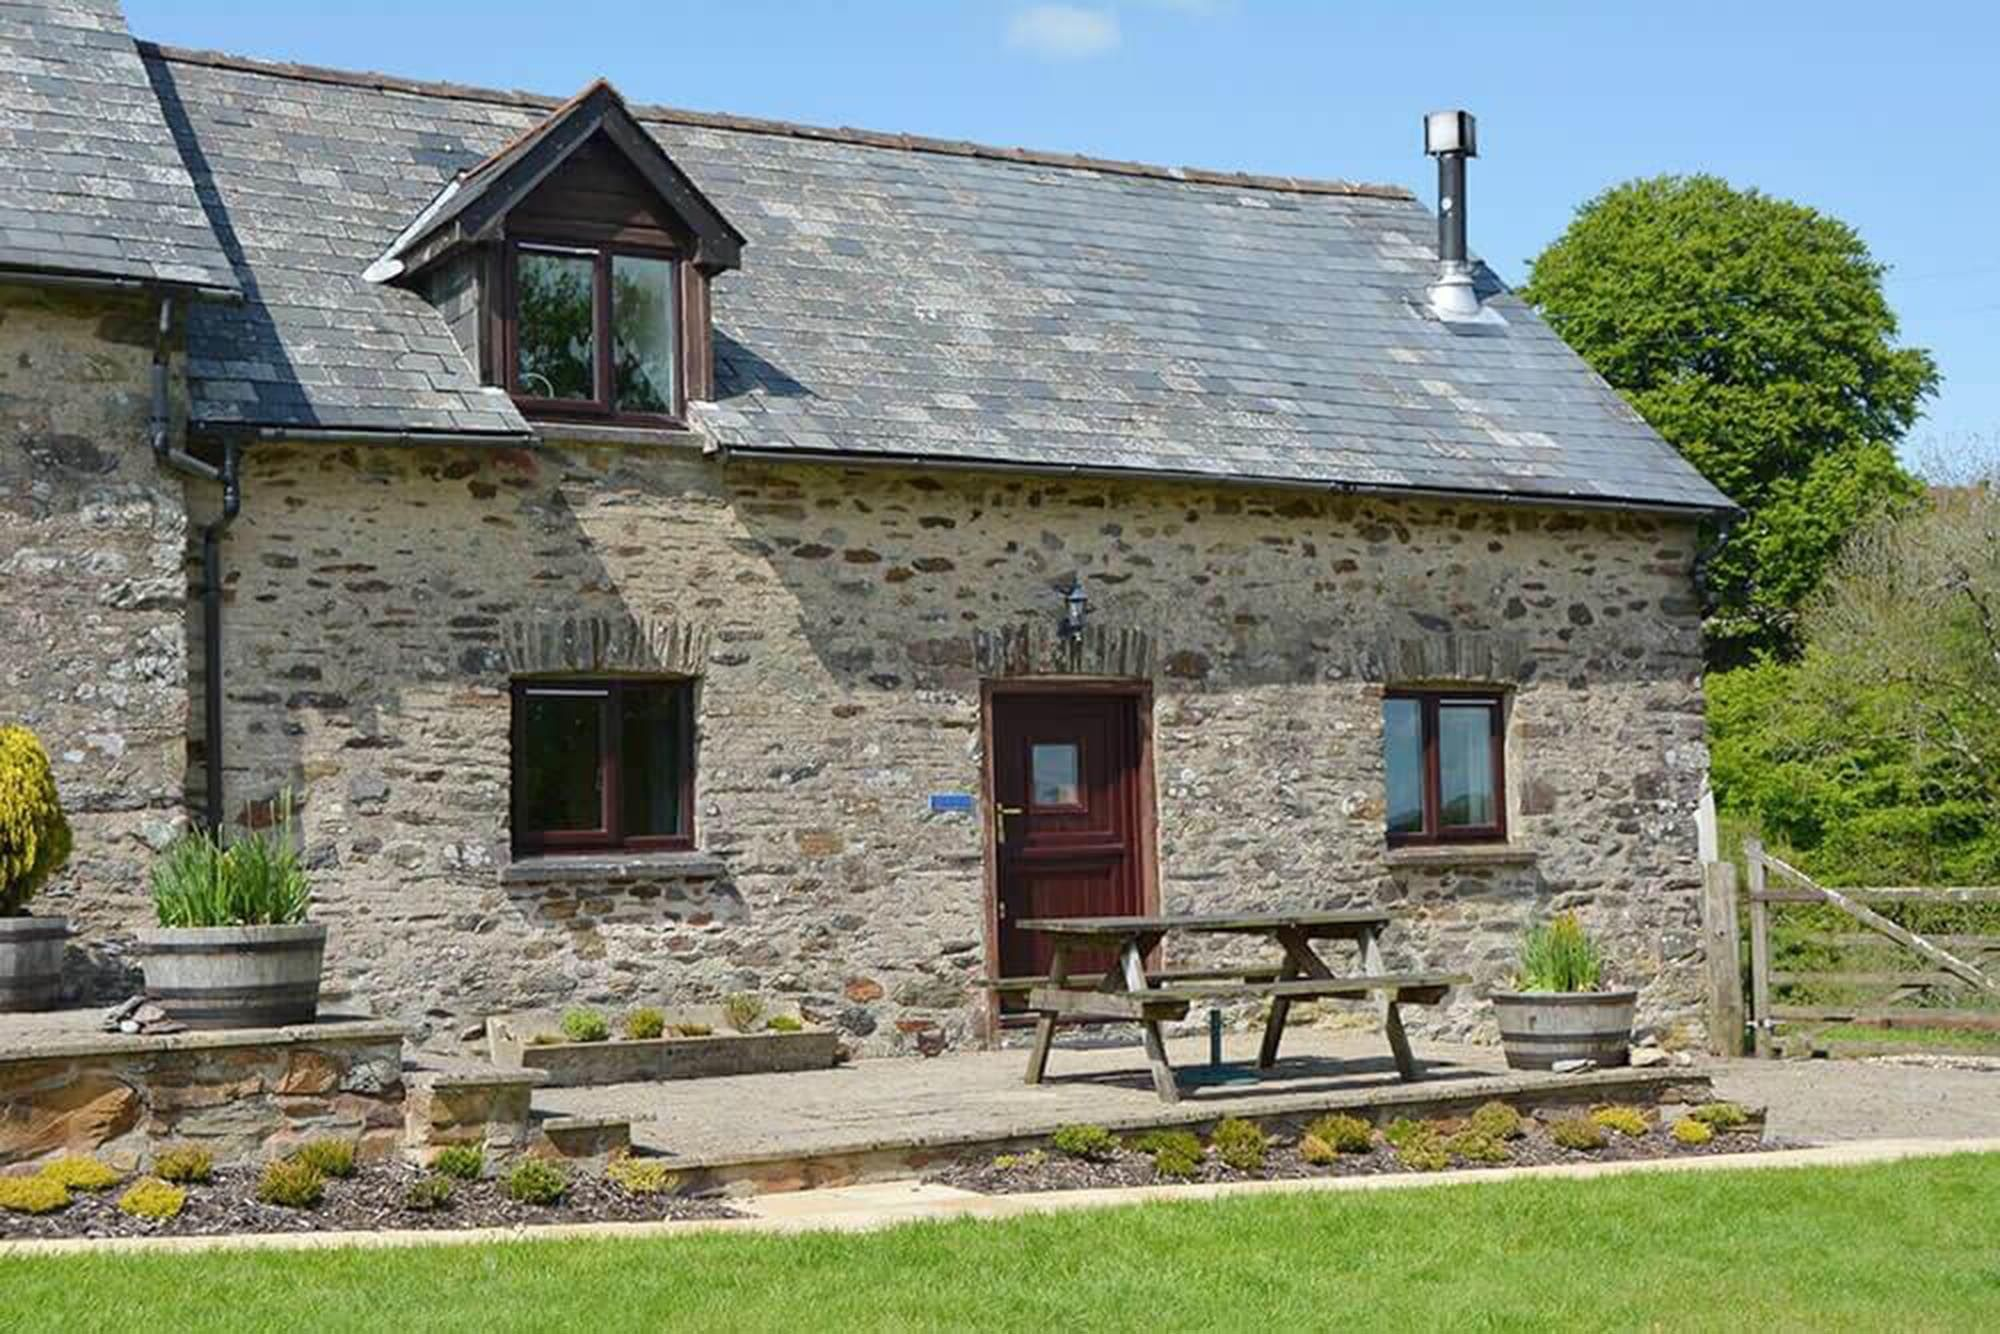 Norton Cottage, sleeping 4, is a traditional stone barn conversion with a private patio area and garden furniture